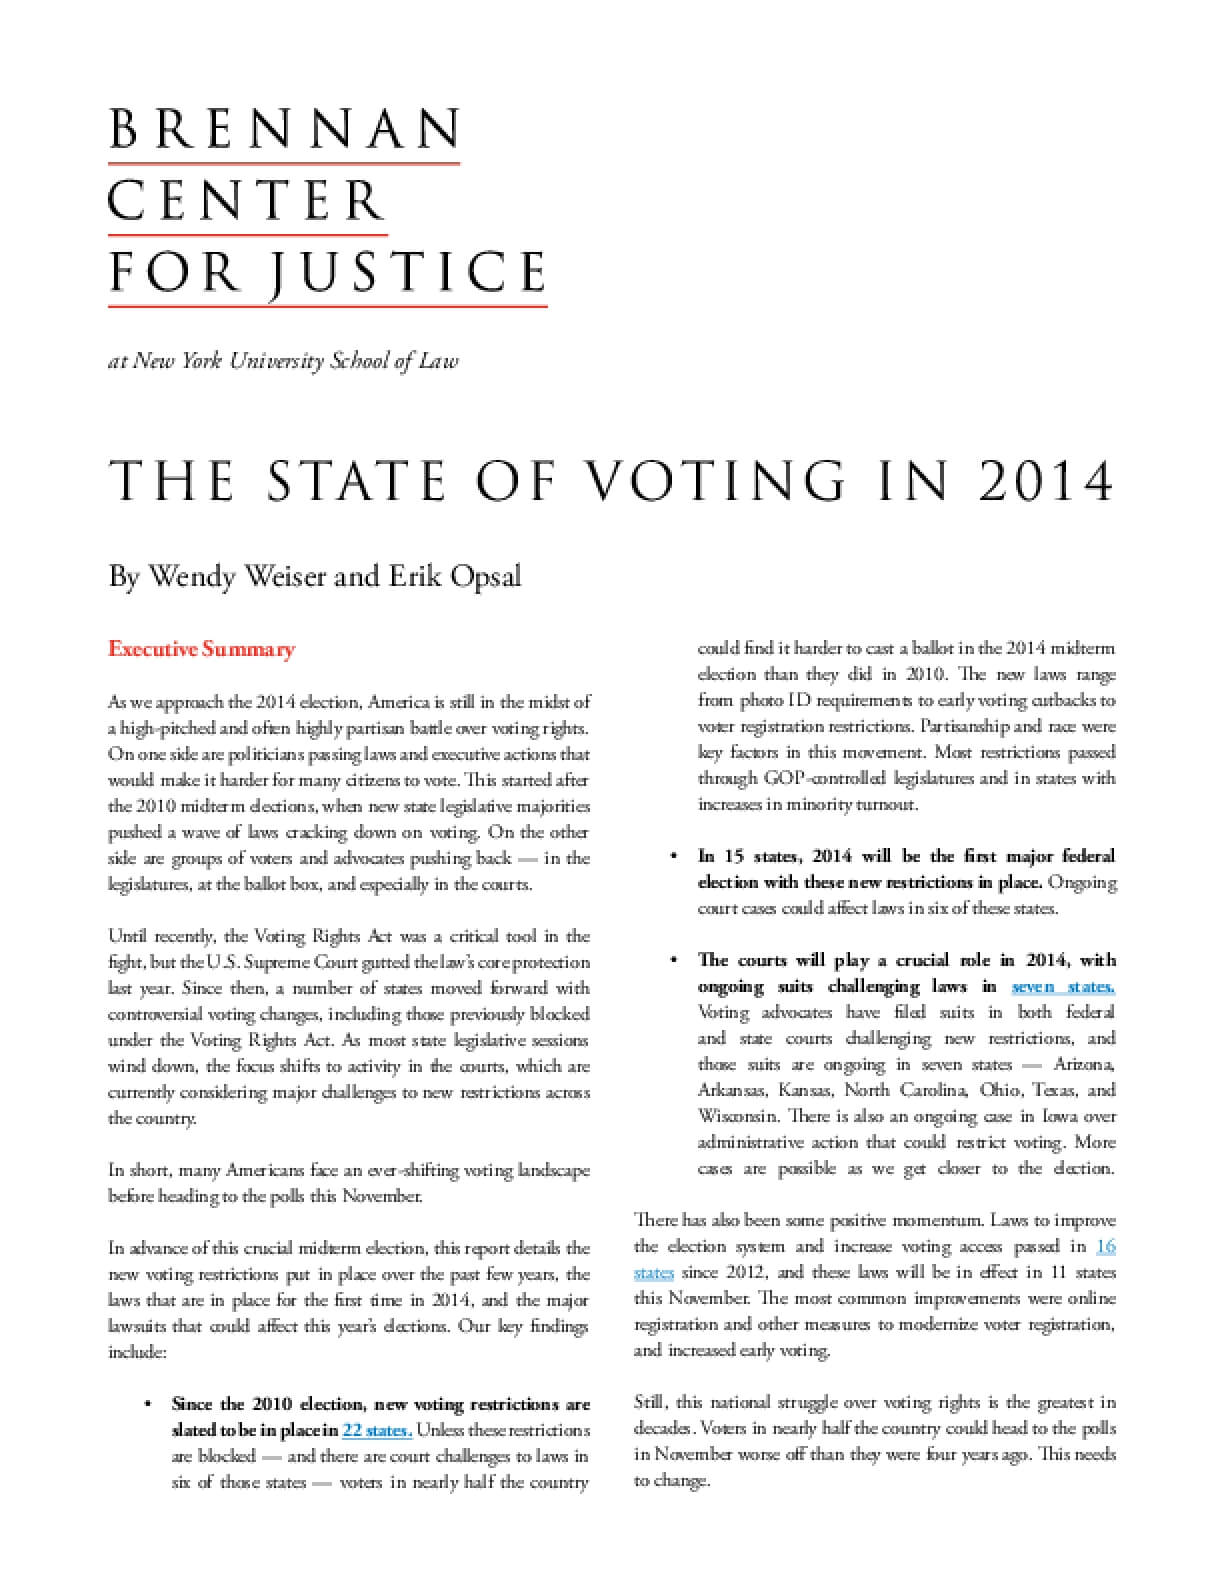 The State of Voting in 2014